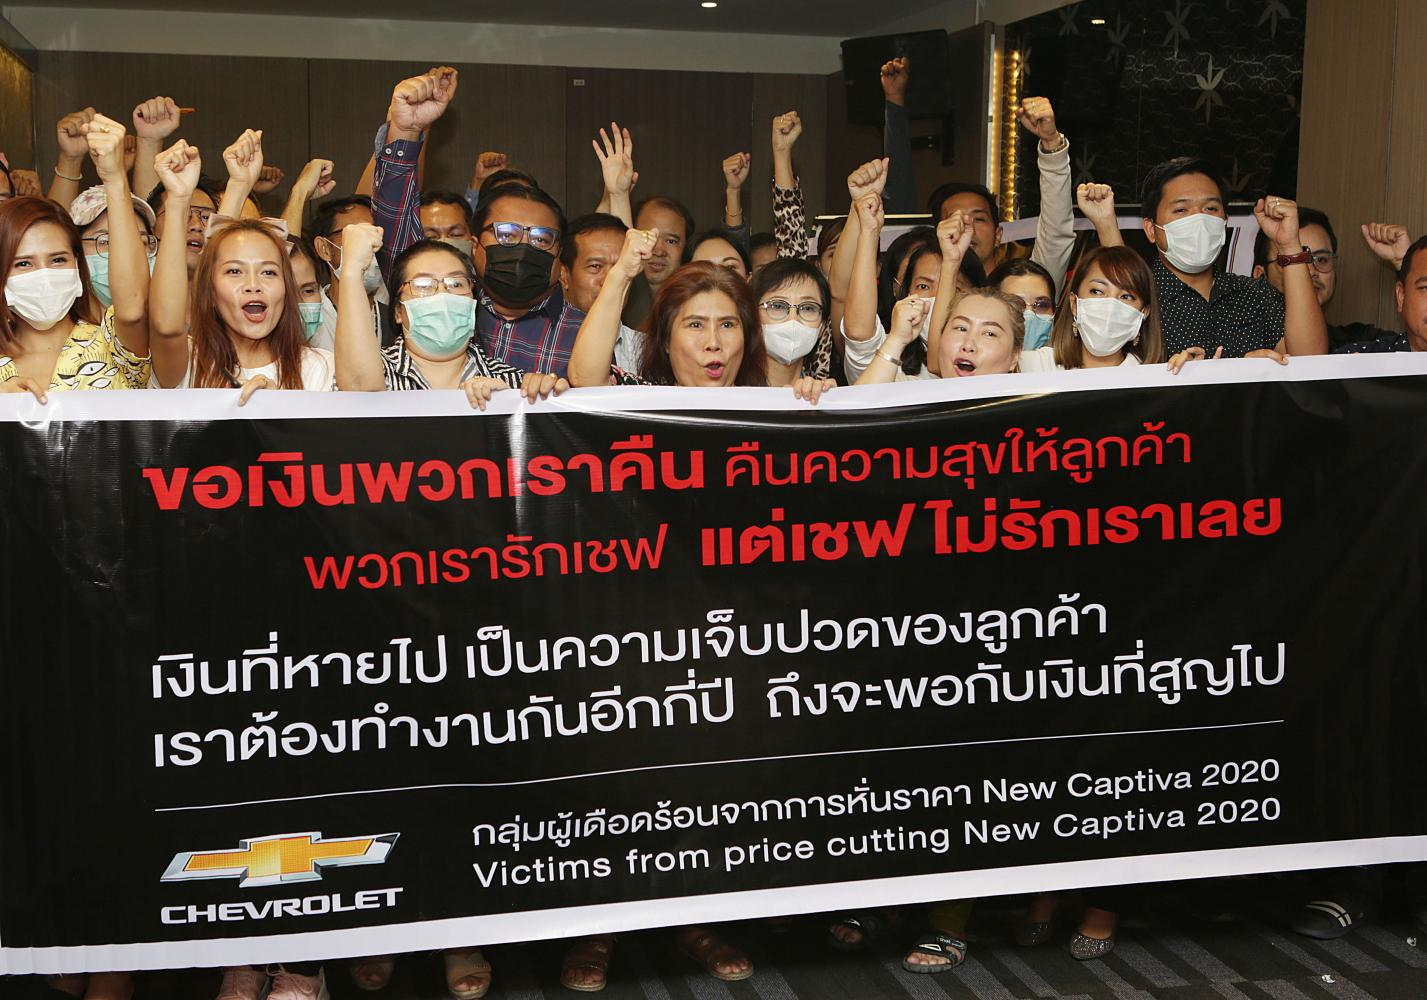 Some 100 owners of Chevrolet vehicles gather at the headquarters of General Motors (GM) Thailand and Chevrolet Sales (Thailand) in Bangkok demanding they be compensated after the retail price of many Chevrolet models was slashed to clear stocks.(Photo by Apichit Jinakul)